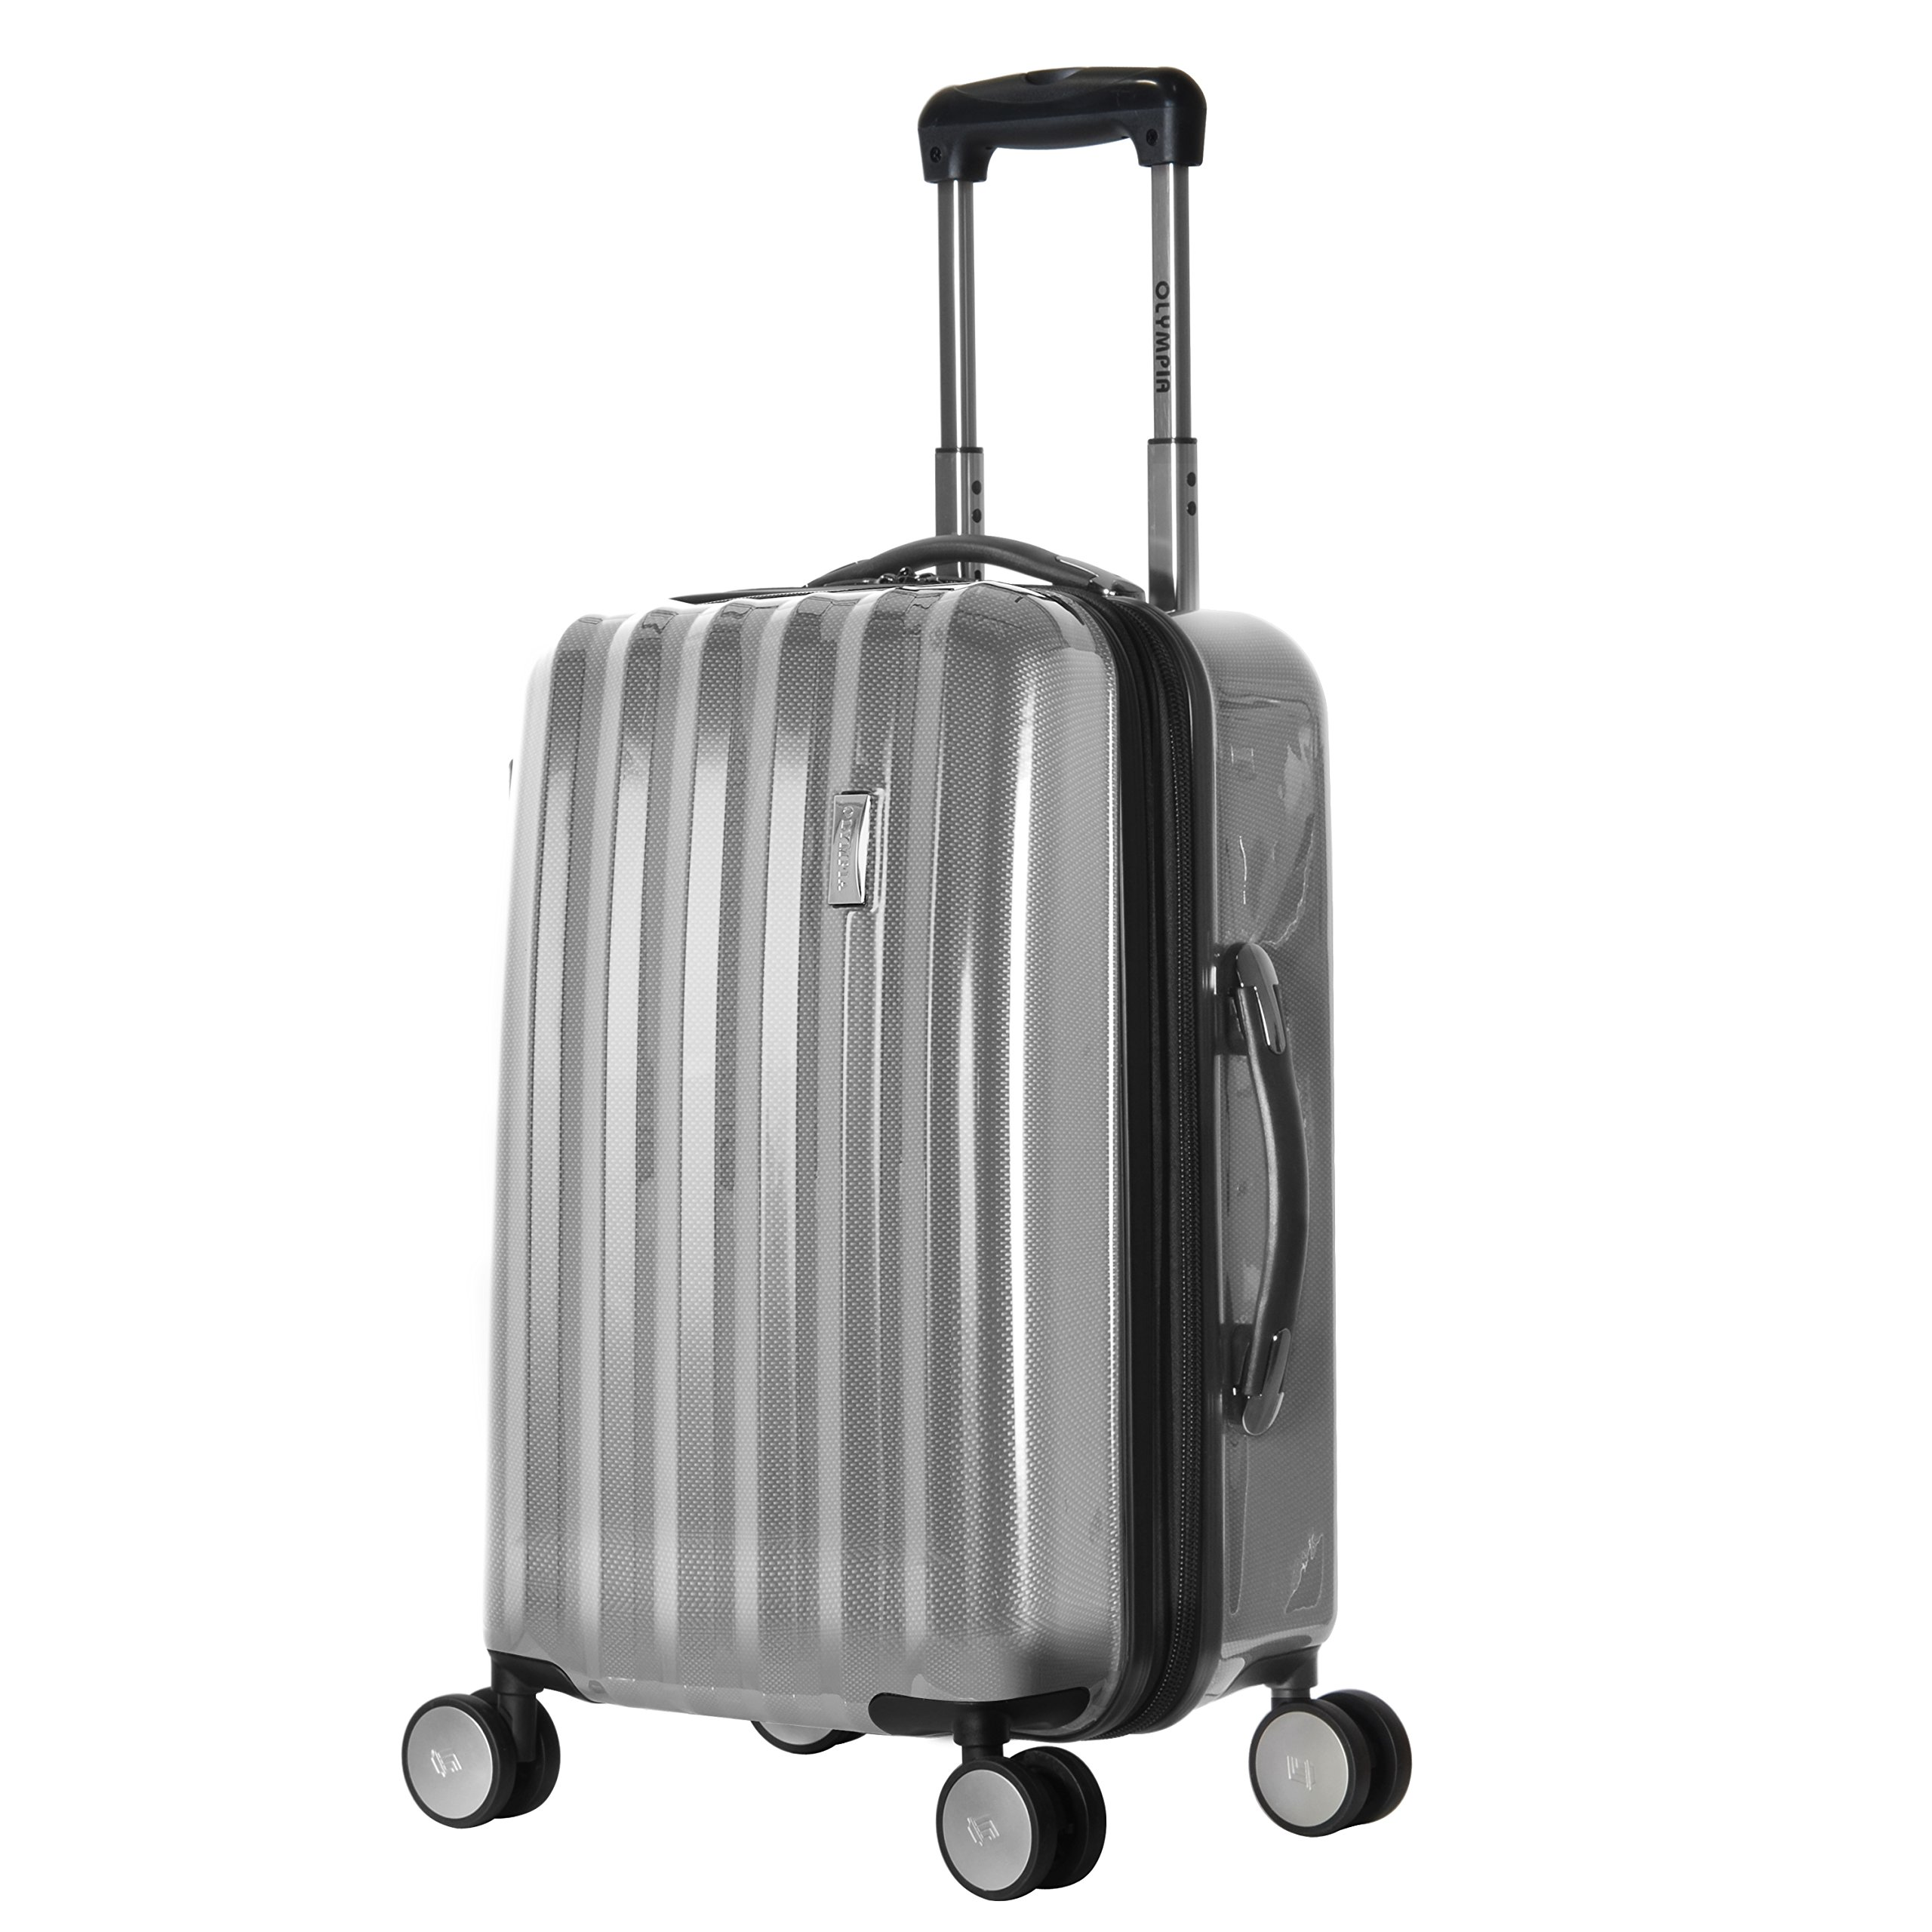 Olympia Titan 21 Inch Expandable Carry-On Hard Case Spinner, Silver, One Size by Olympia